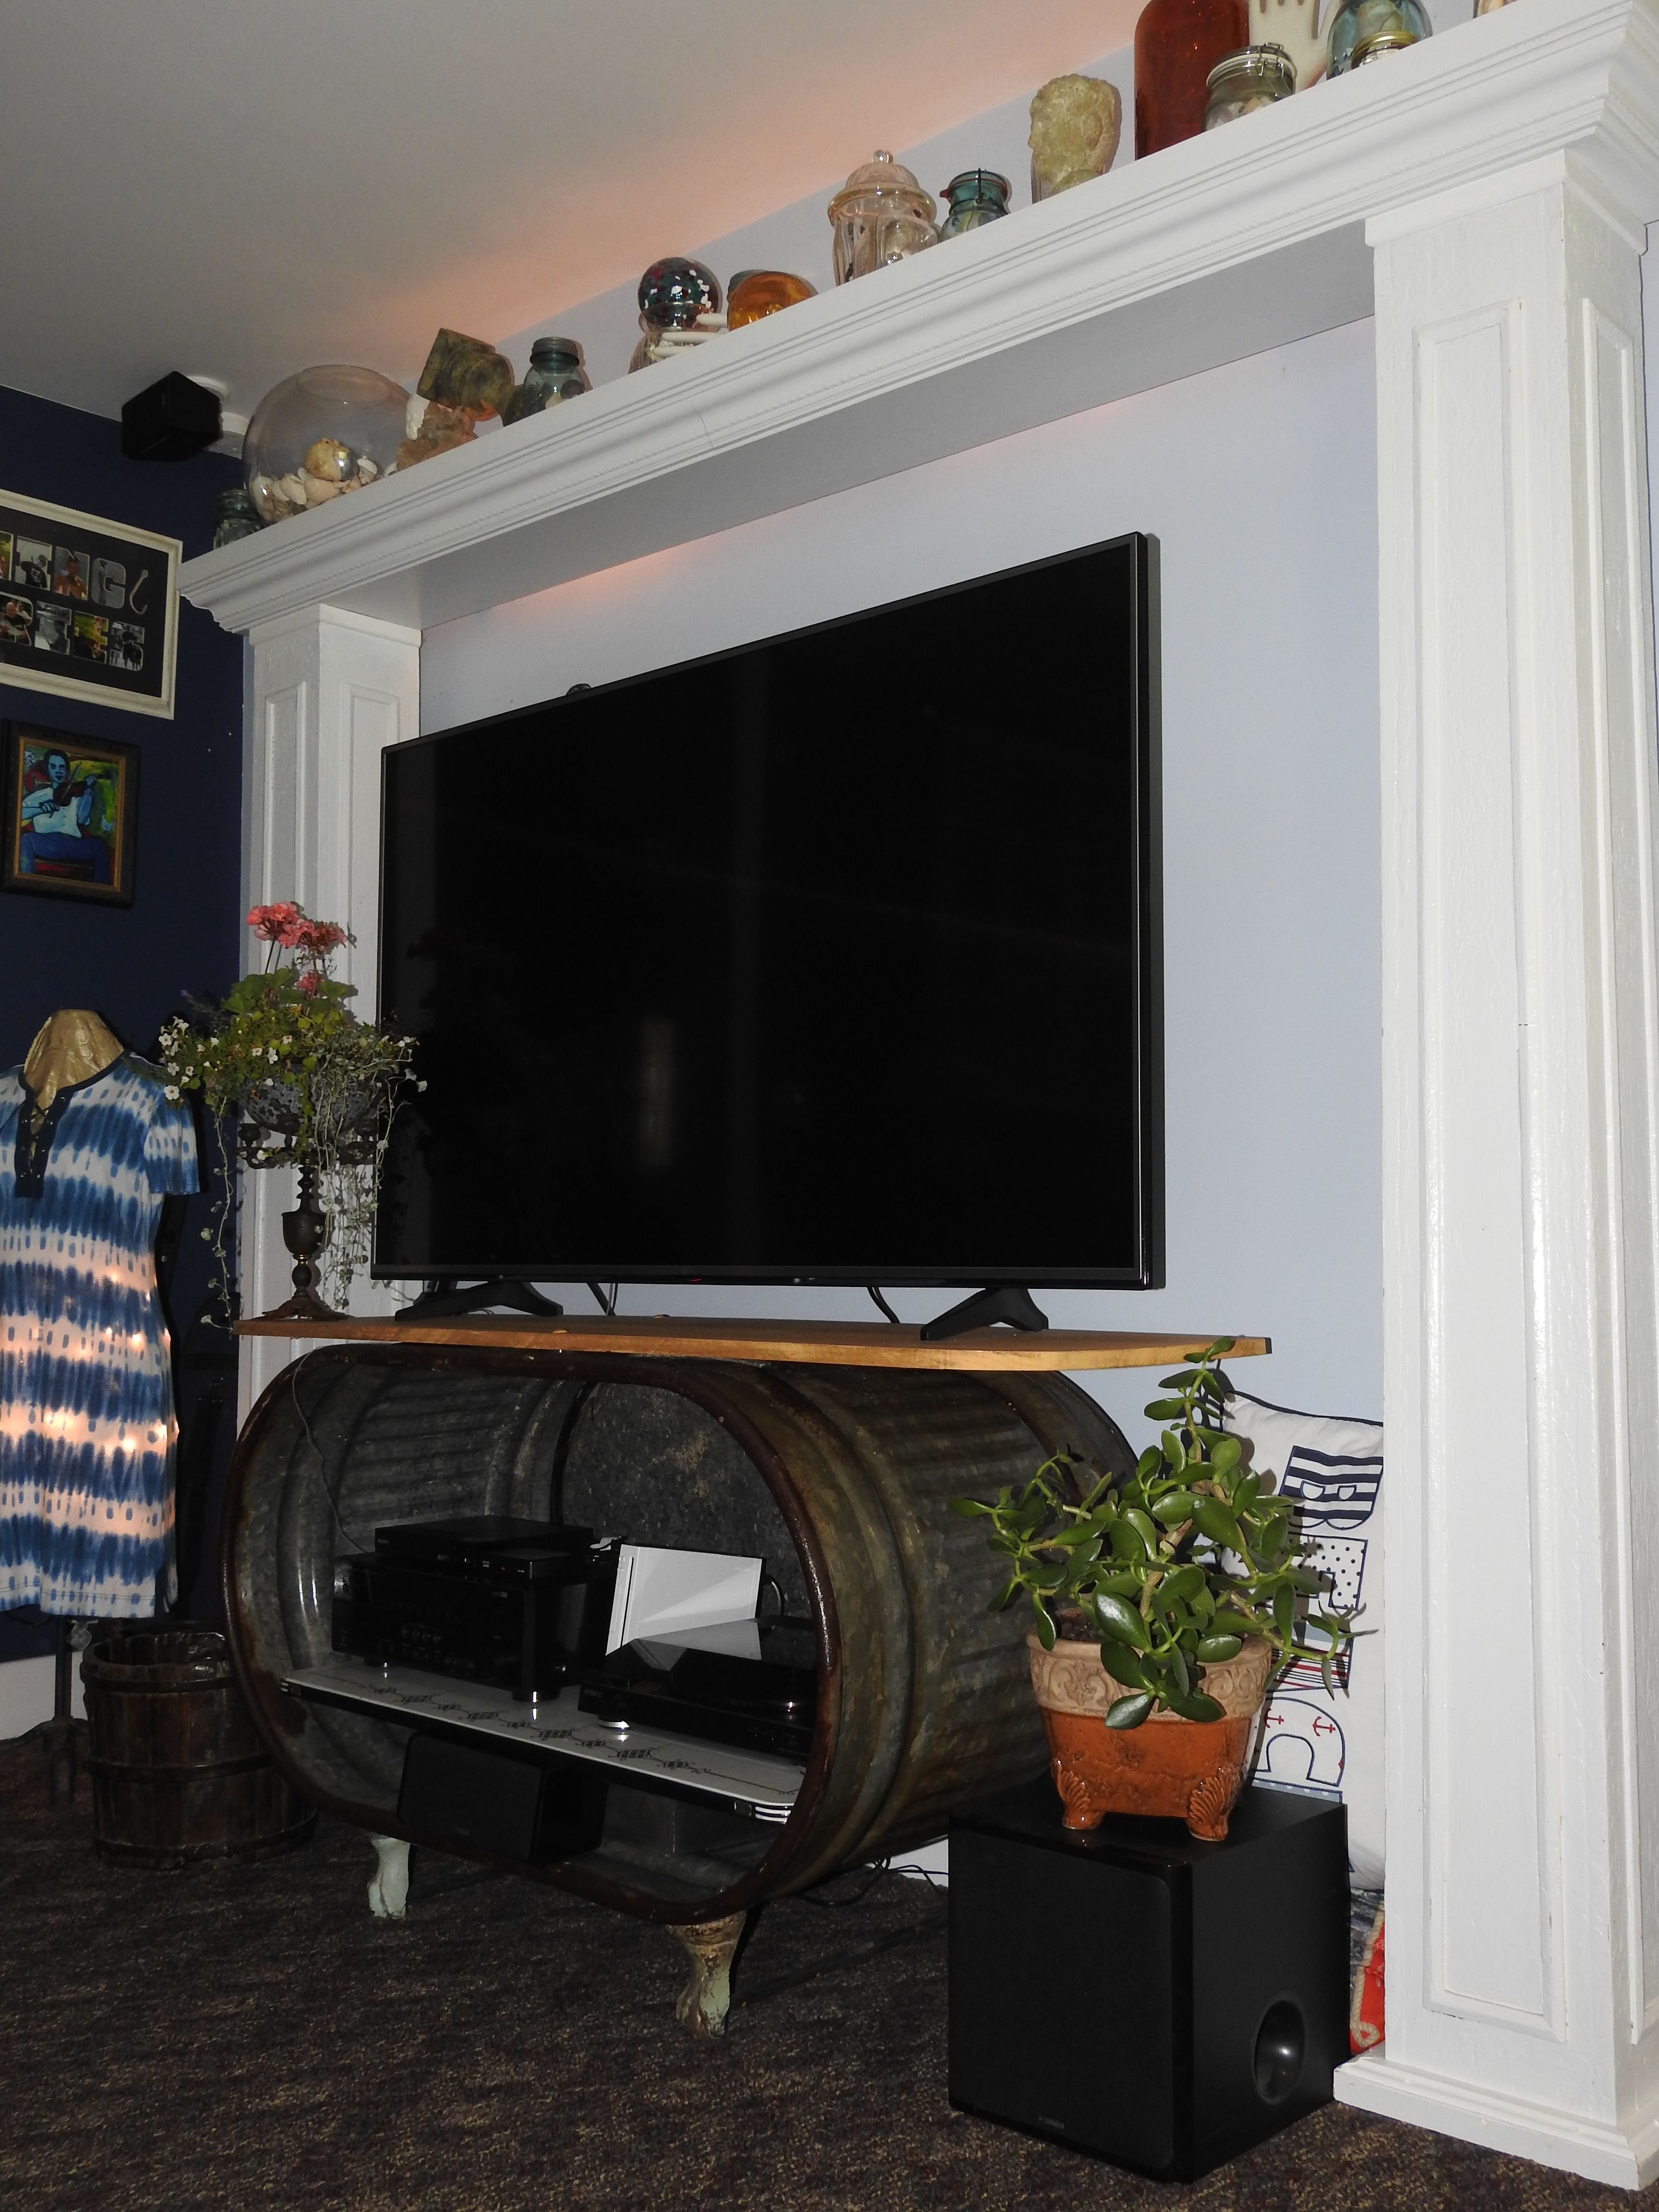 Porch columns topped with fireplace mantle. TV stand made